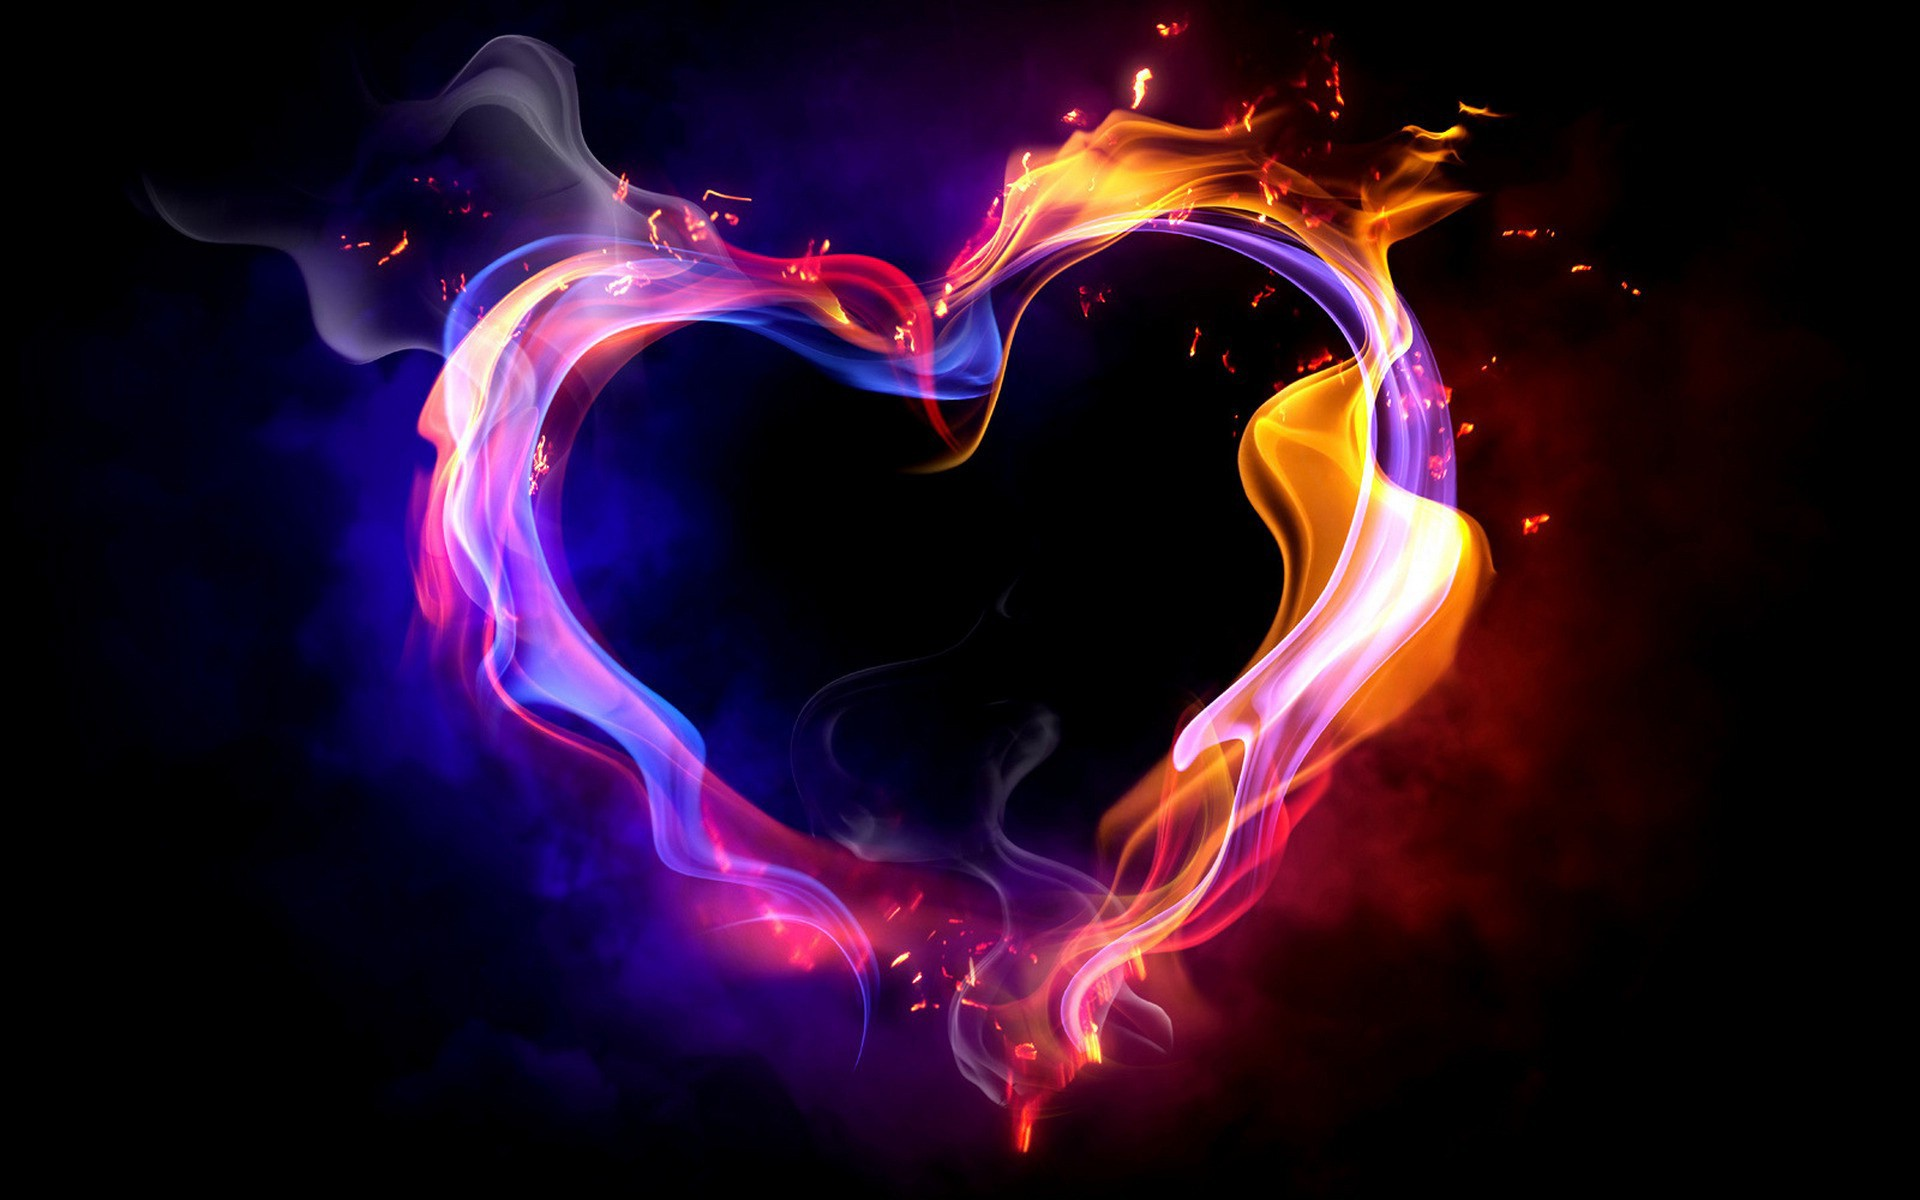 IM RANDOM Images Heart On Fire HD Wallpaper And Background Photos